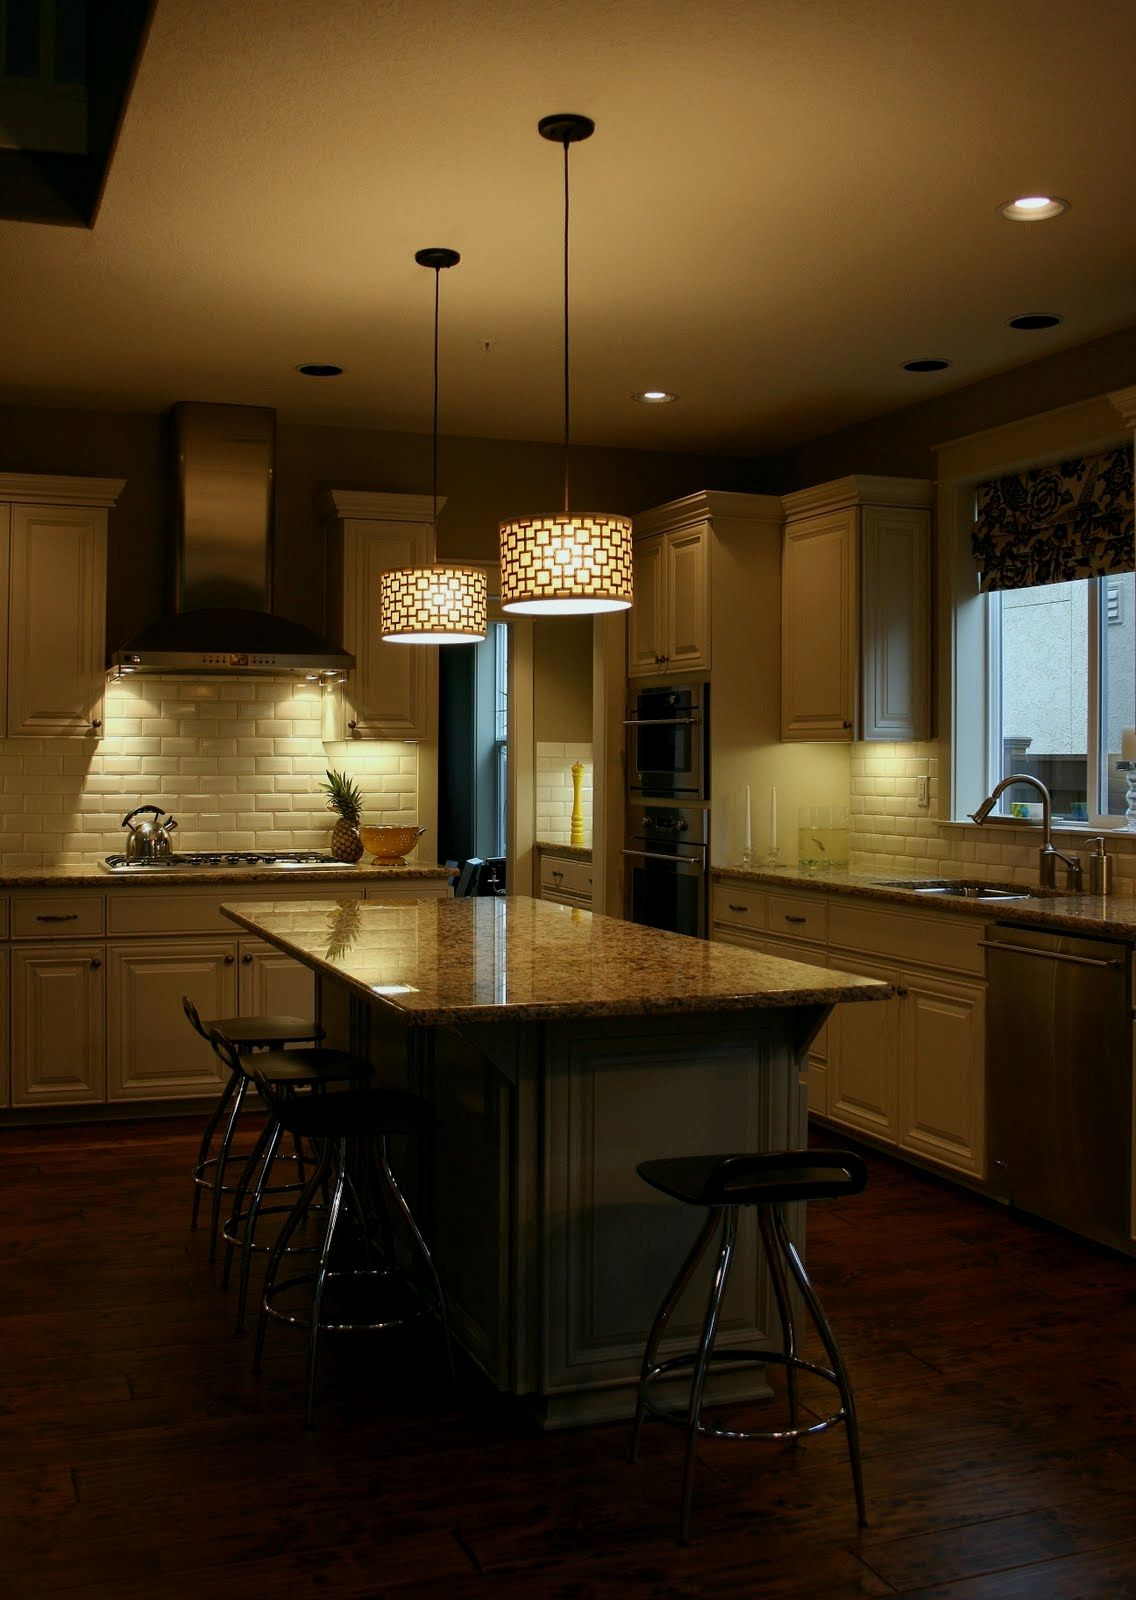 29 Awesome Kitchen Lighting Fixture Ideas To Complete The ...